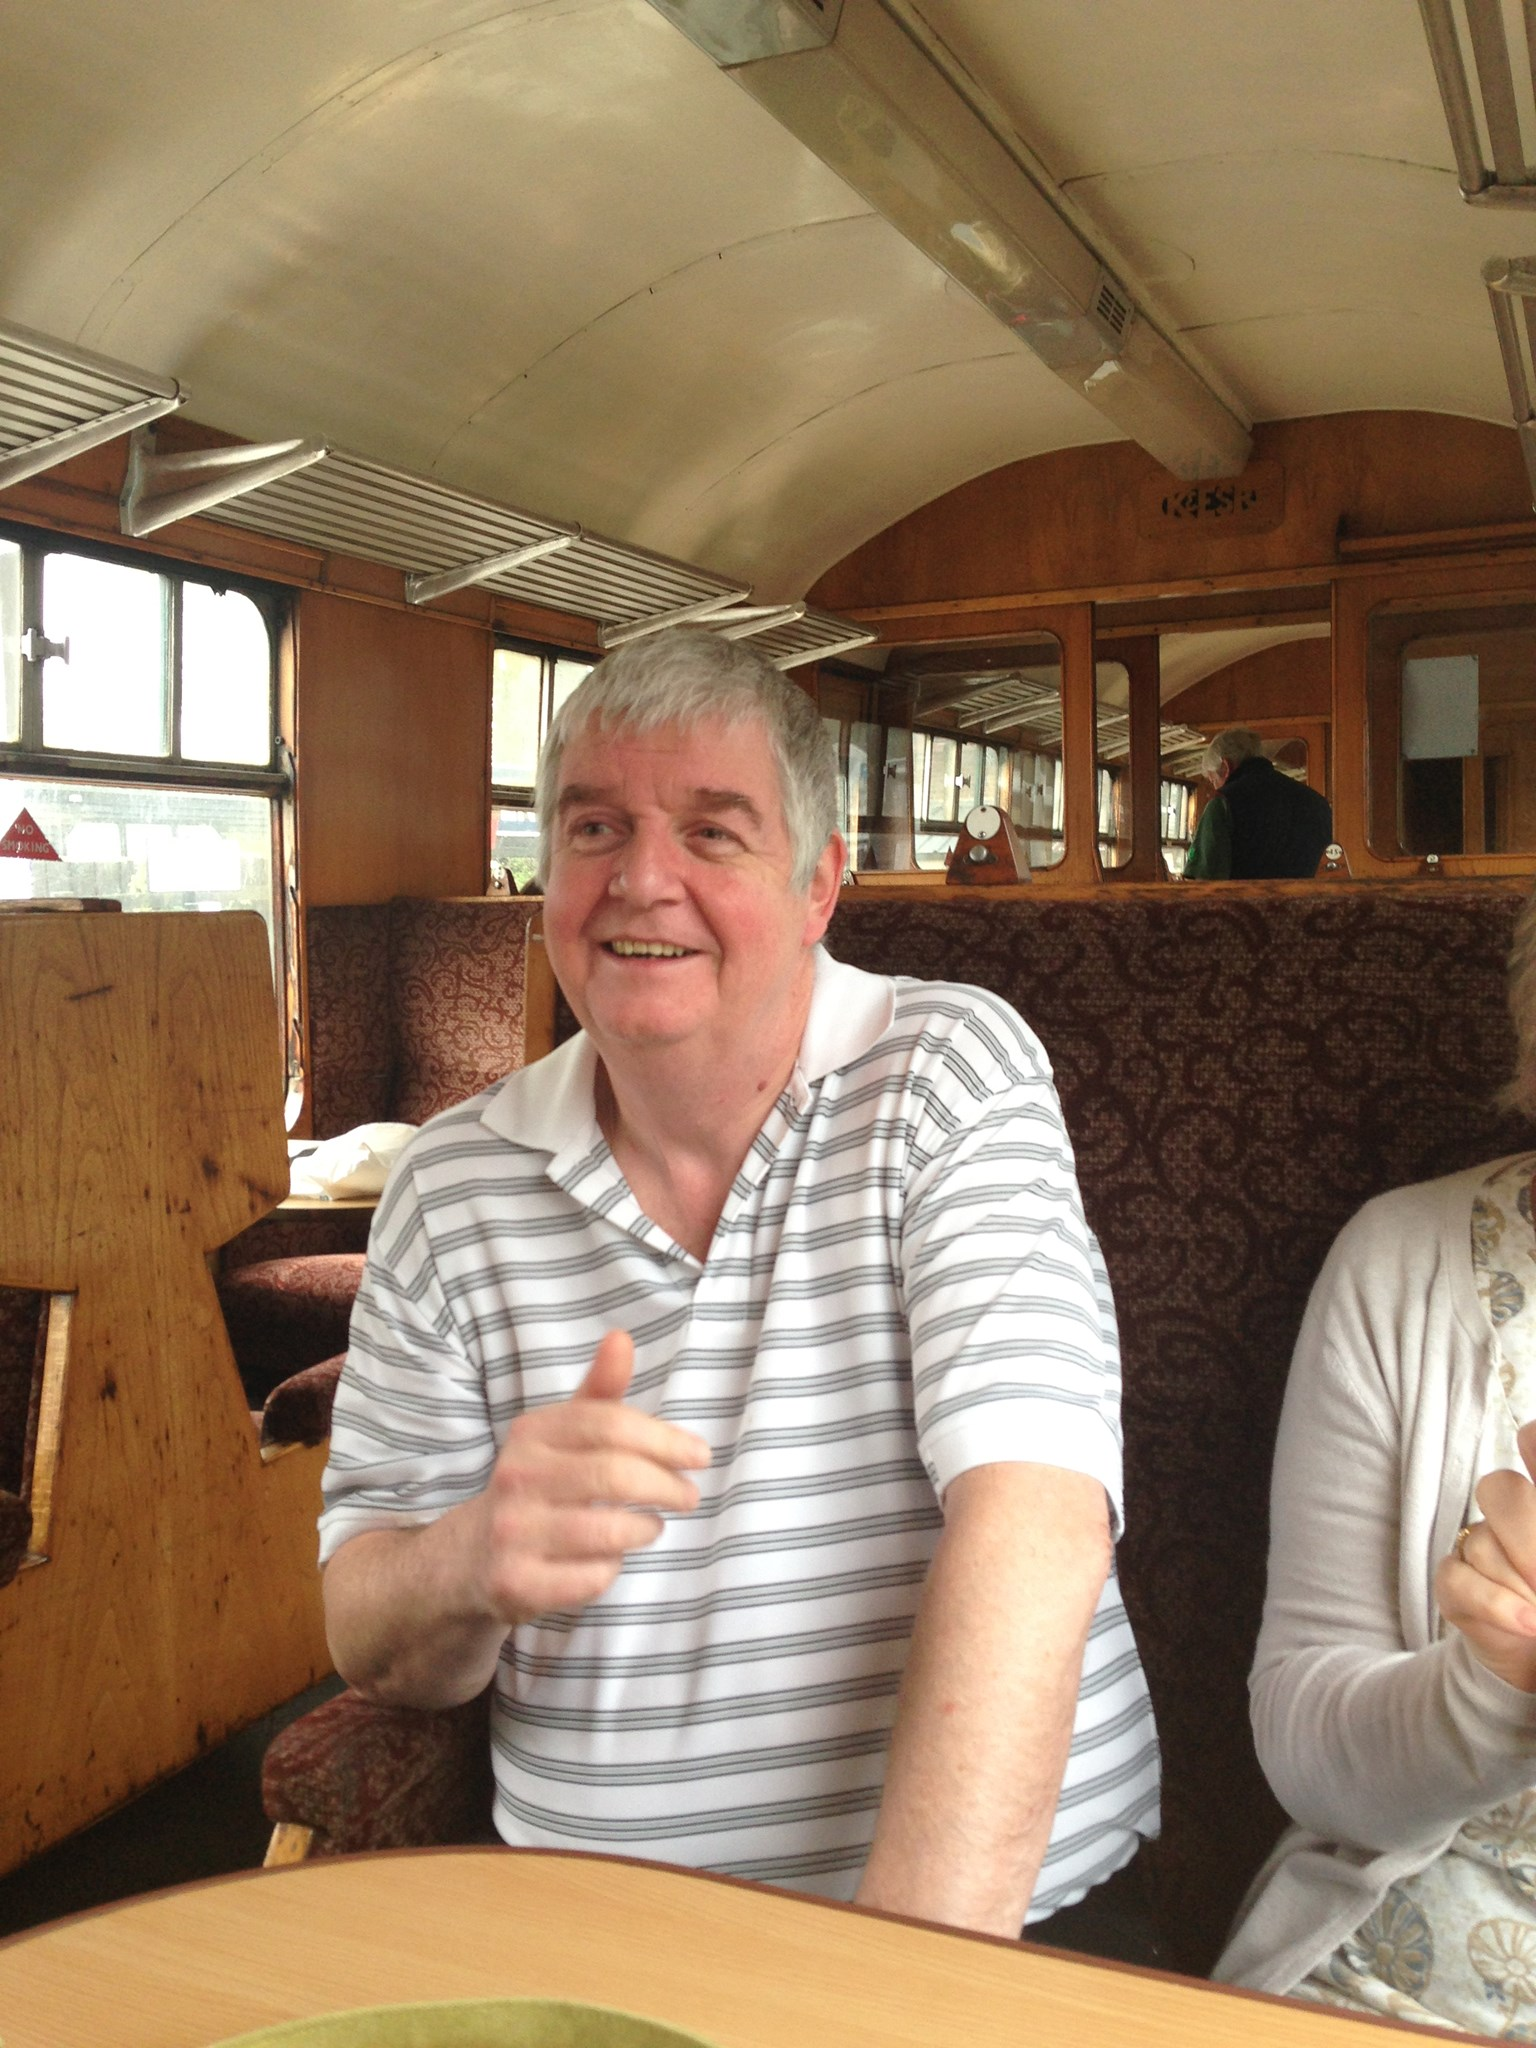 Happy to be on a steam train! Thanks for being our friend!